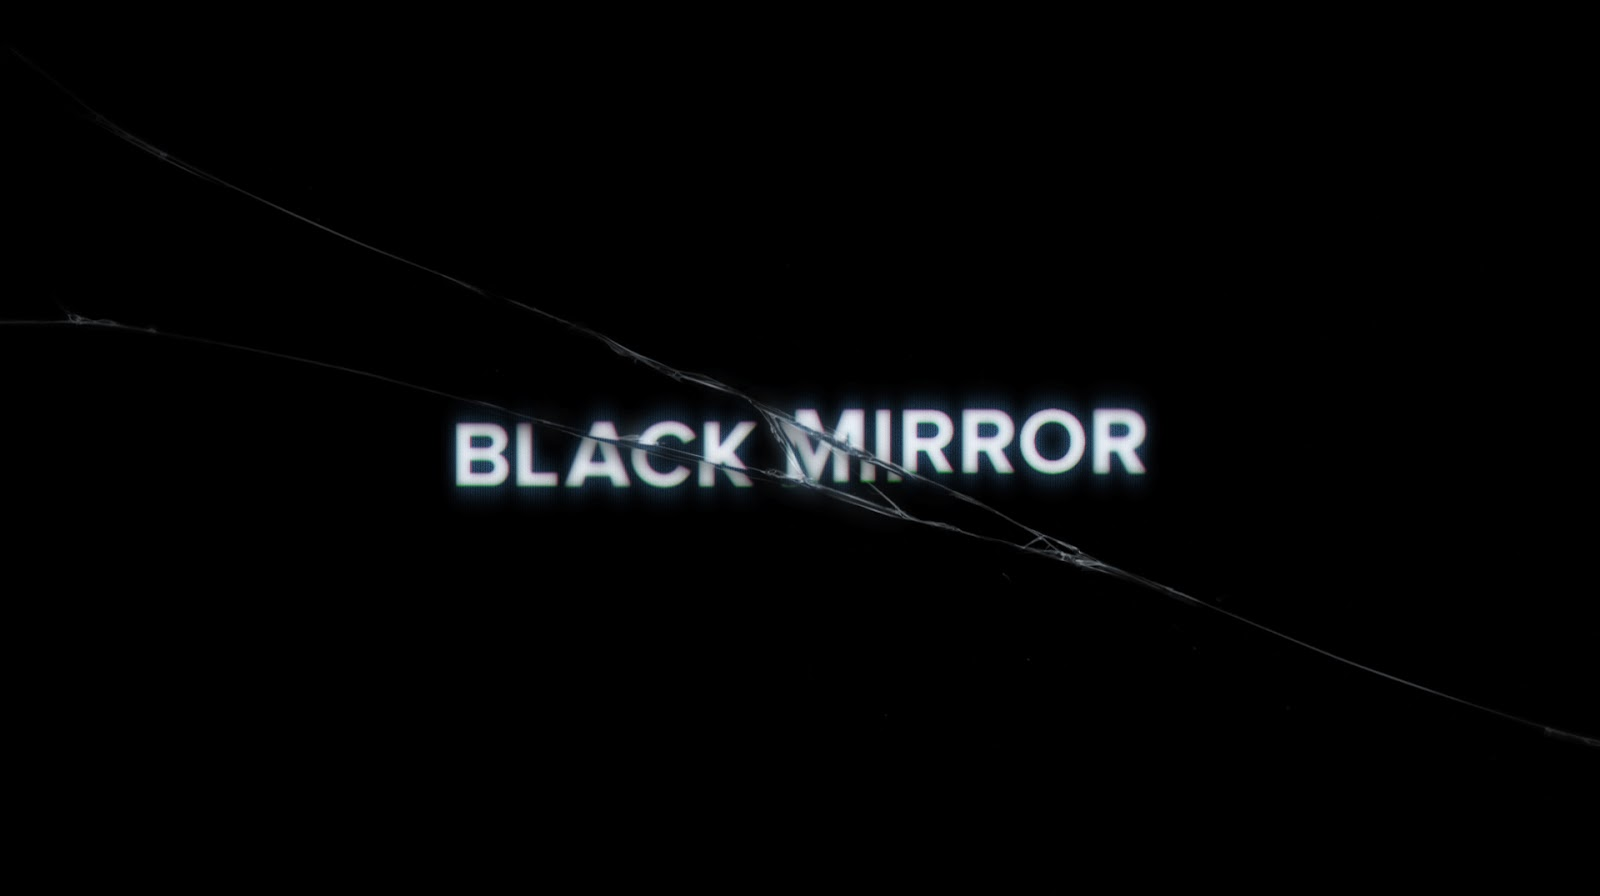 black mirror - photo #6